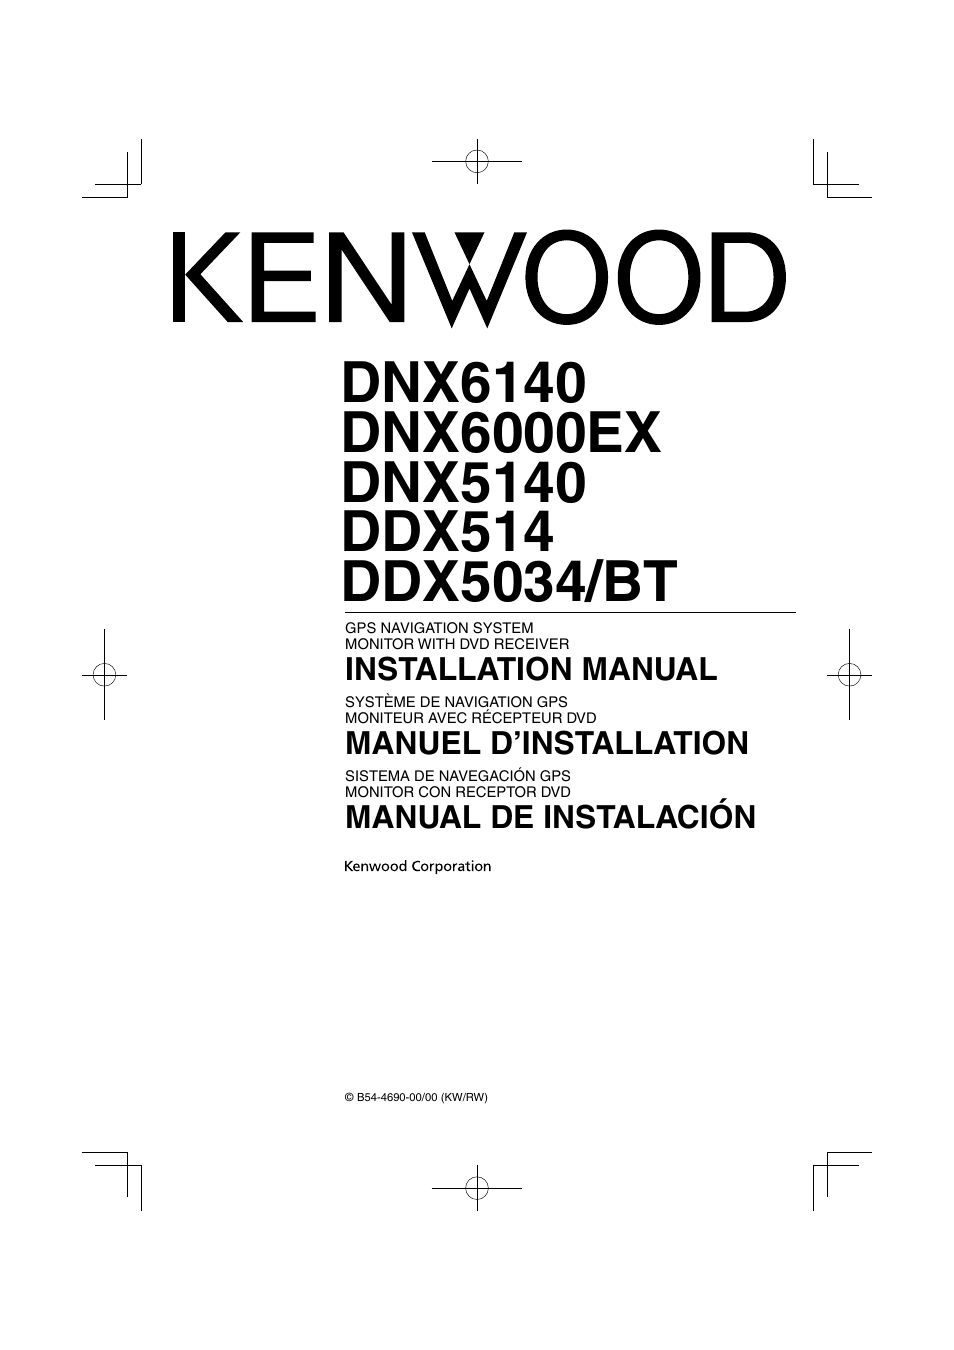 Kenwood ddx5034 user manual 32 pages also for ddx5034bt sciox Gallery